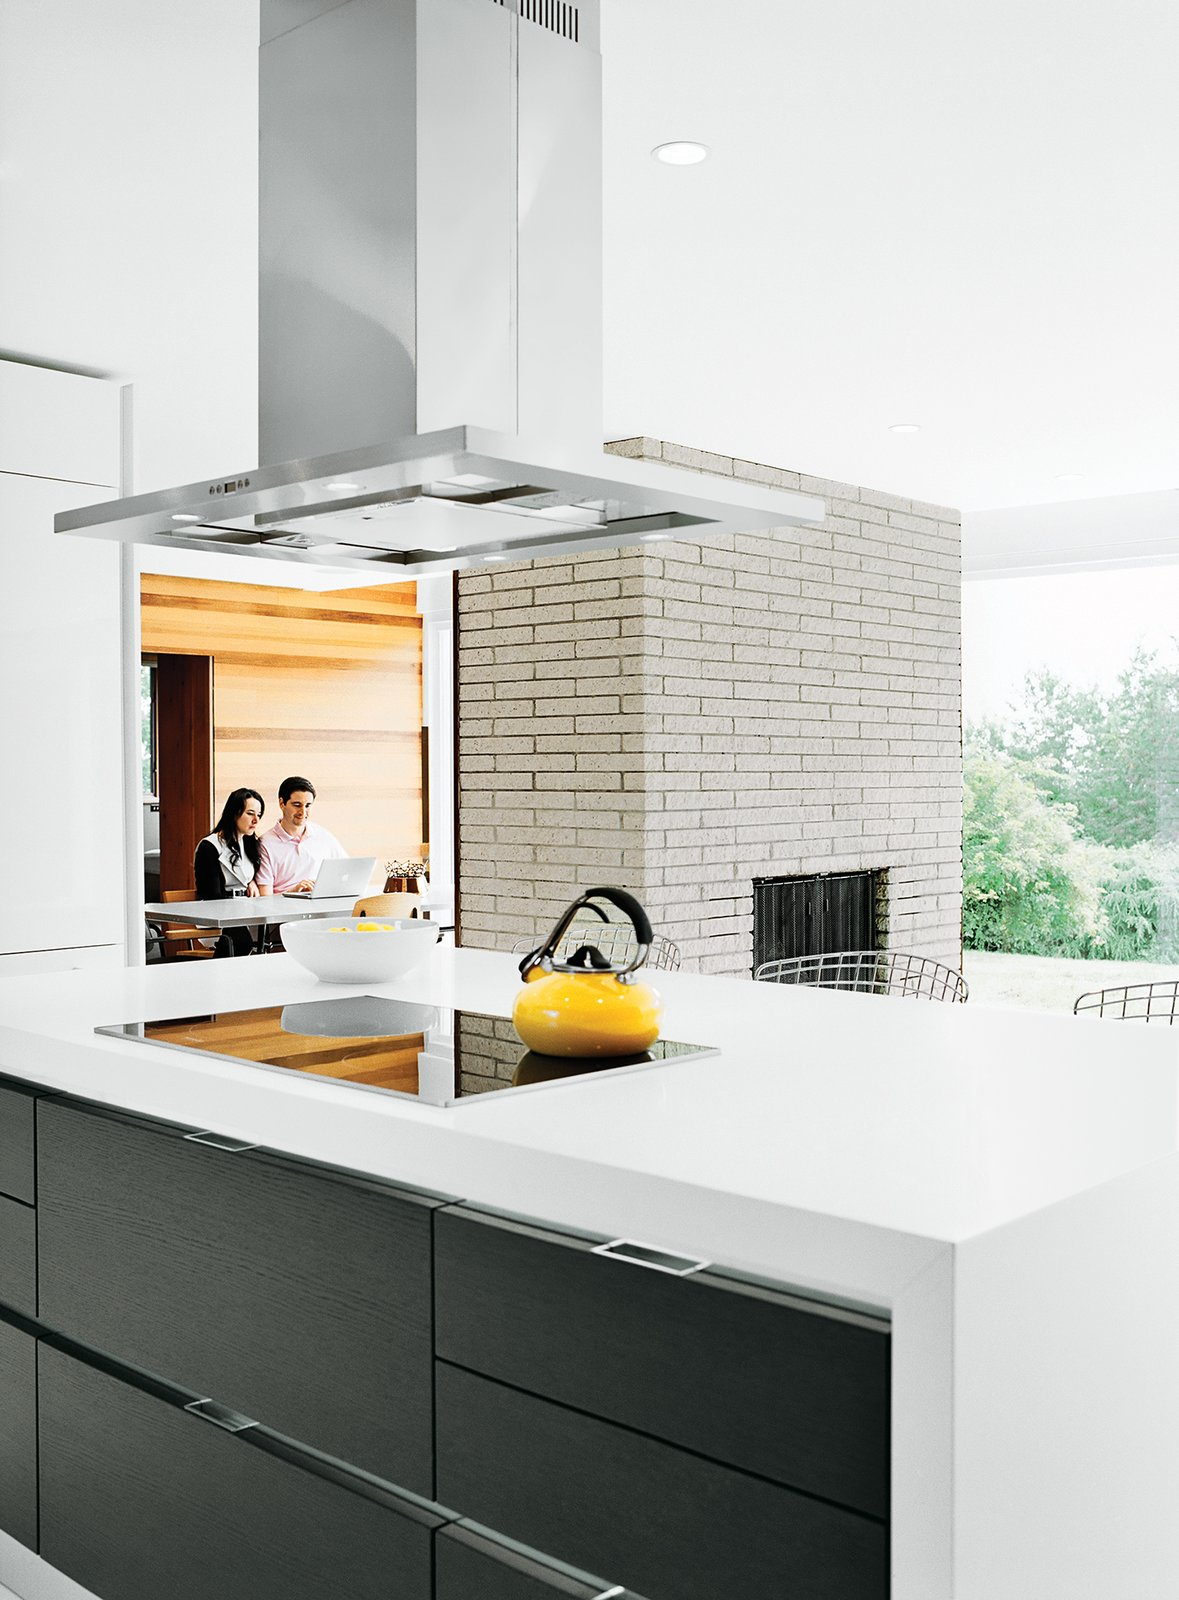 Cooktops the the Modern Kitchen - Tina Comden